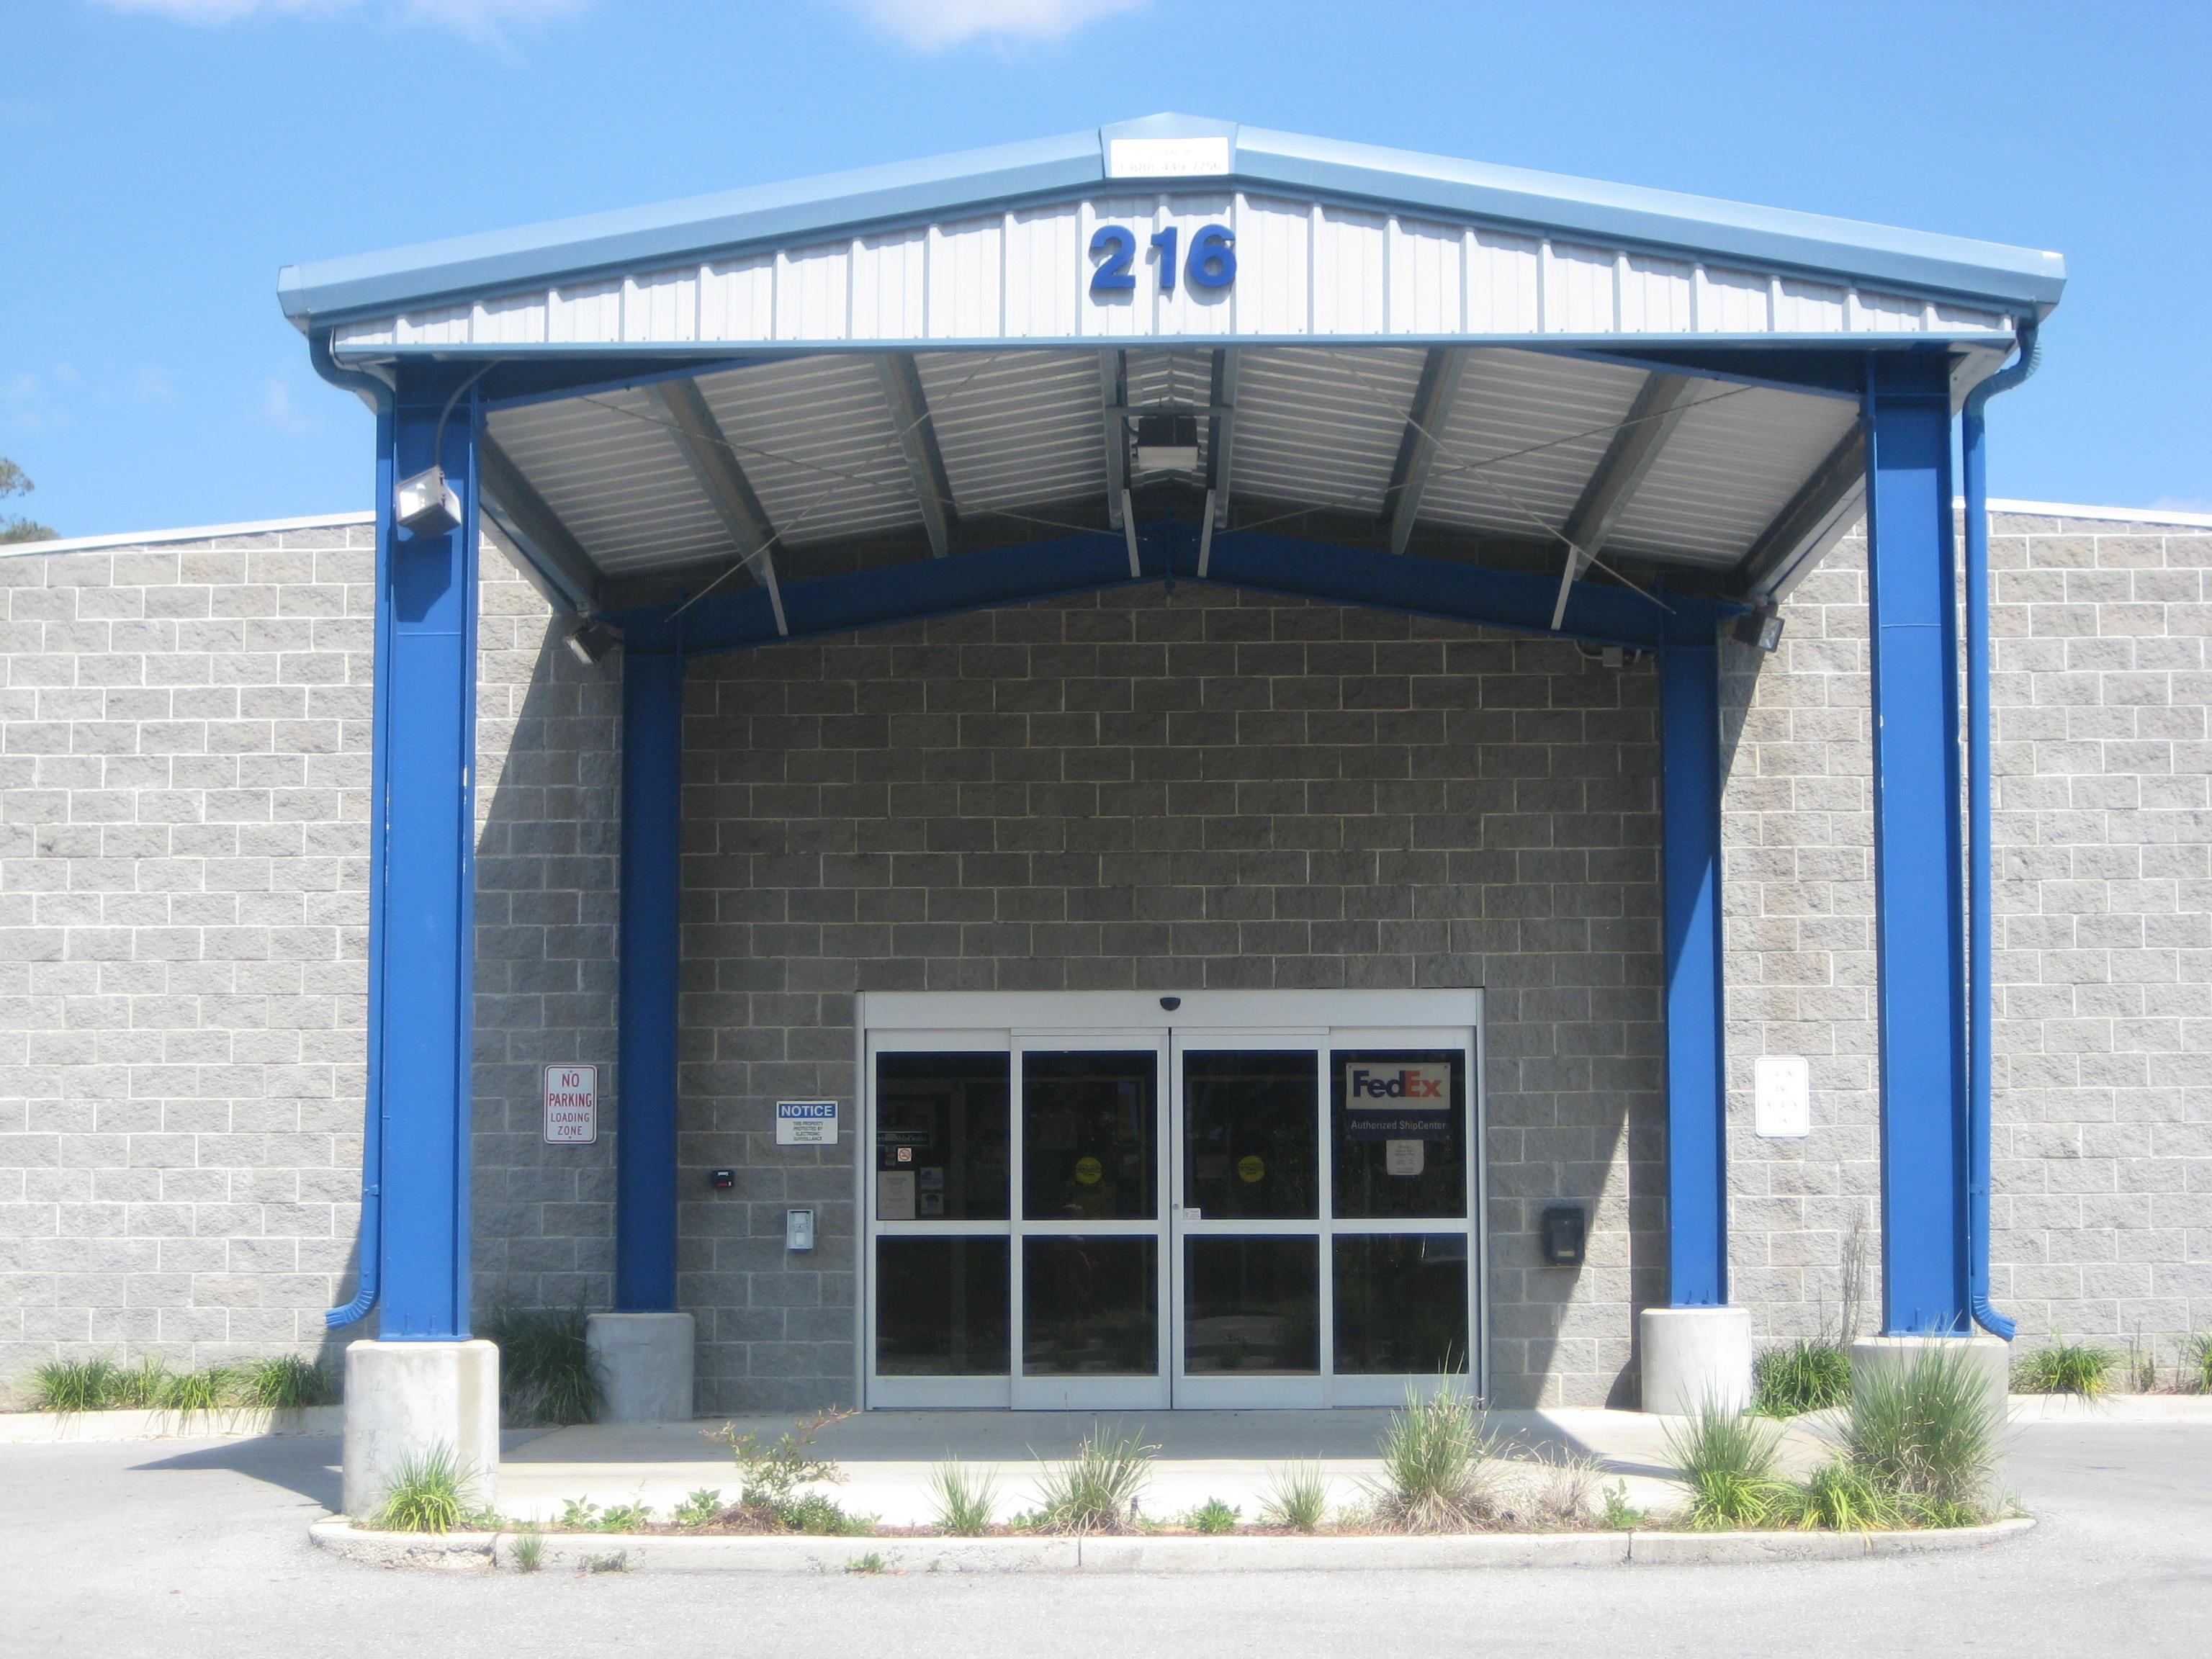 We are located at 216 Government Avenue, Niceville, FL